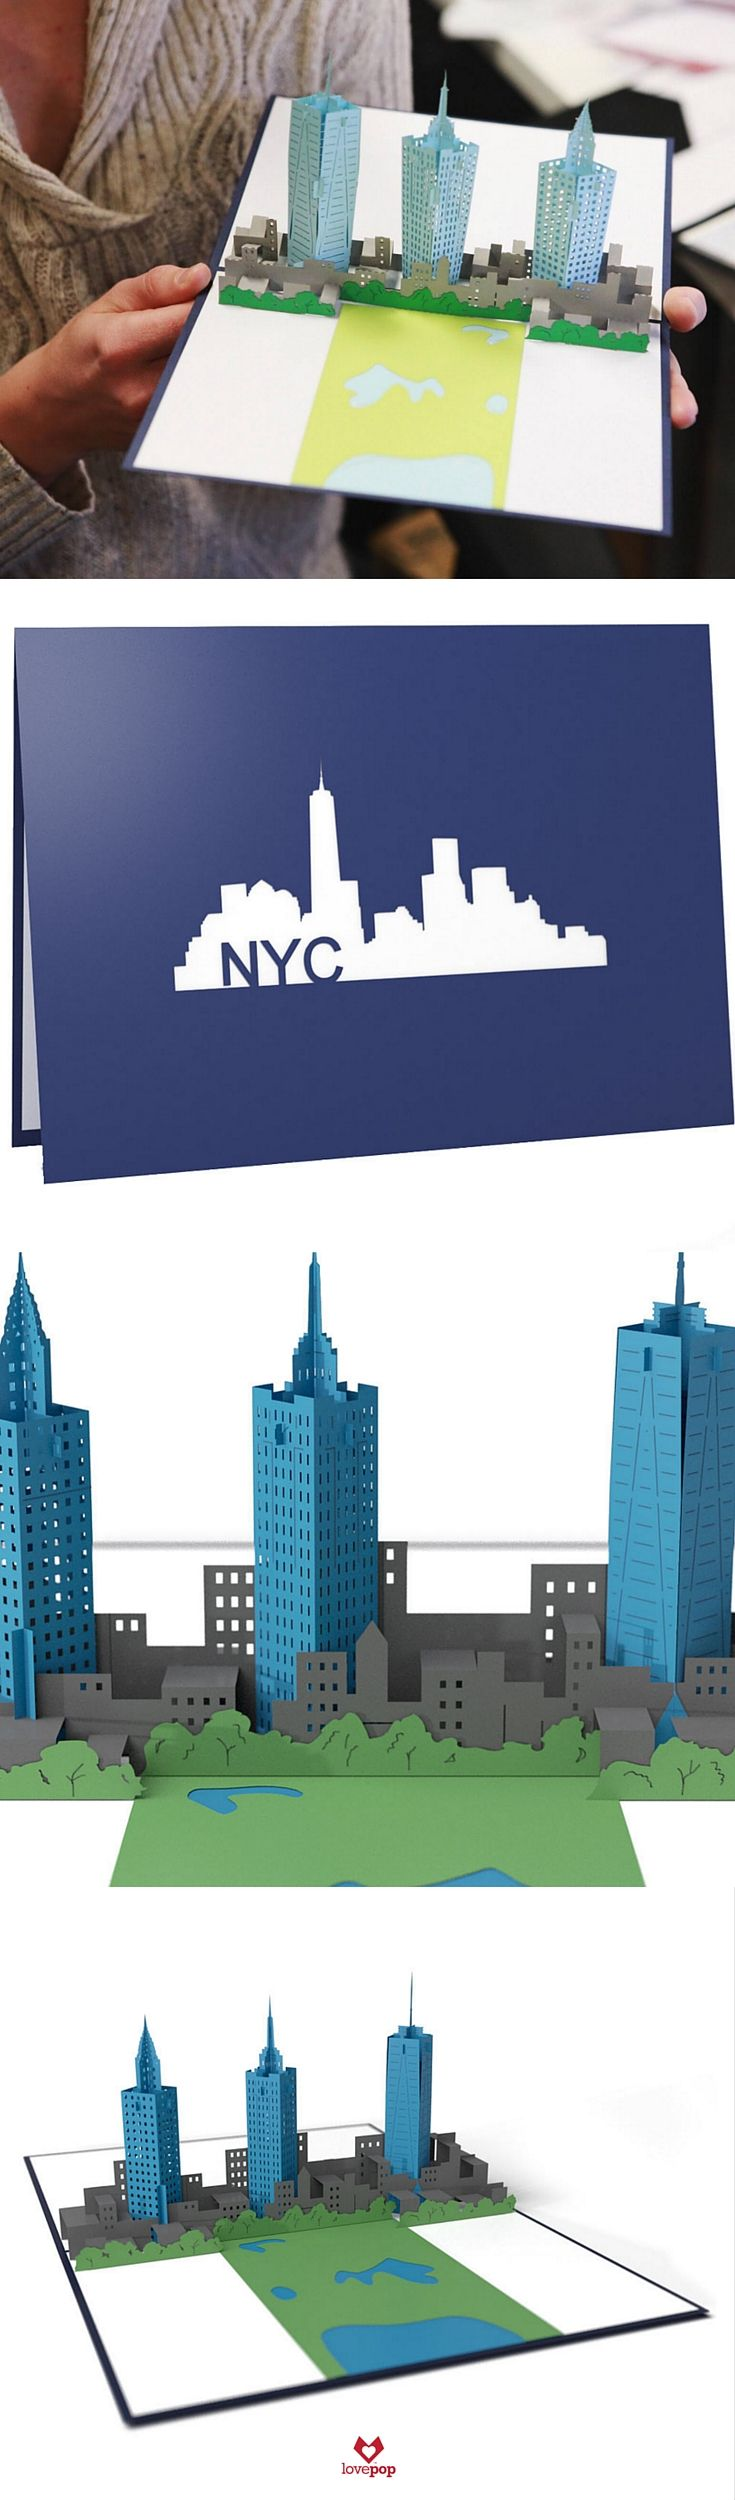 Our NYC skyline card was created specially for Shark Tank's Barbara. Send it to your favorite New Yorker and celebrate all that you love about the Big Apple!